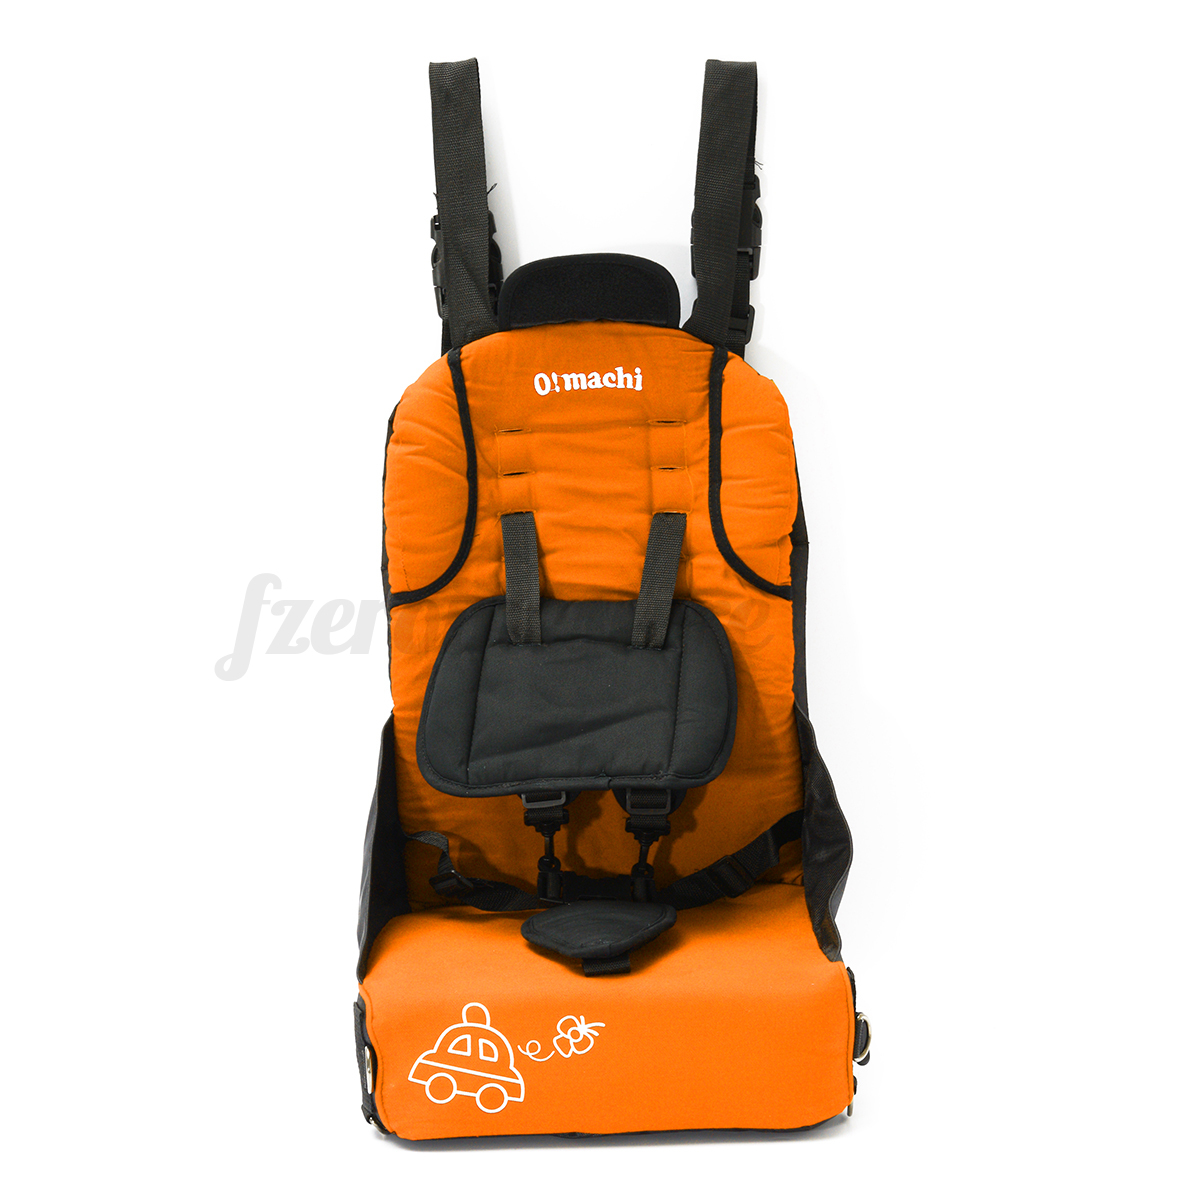 Portable Safety Baby Car Seat Toddler Infant Convertible